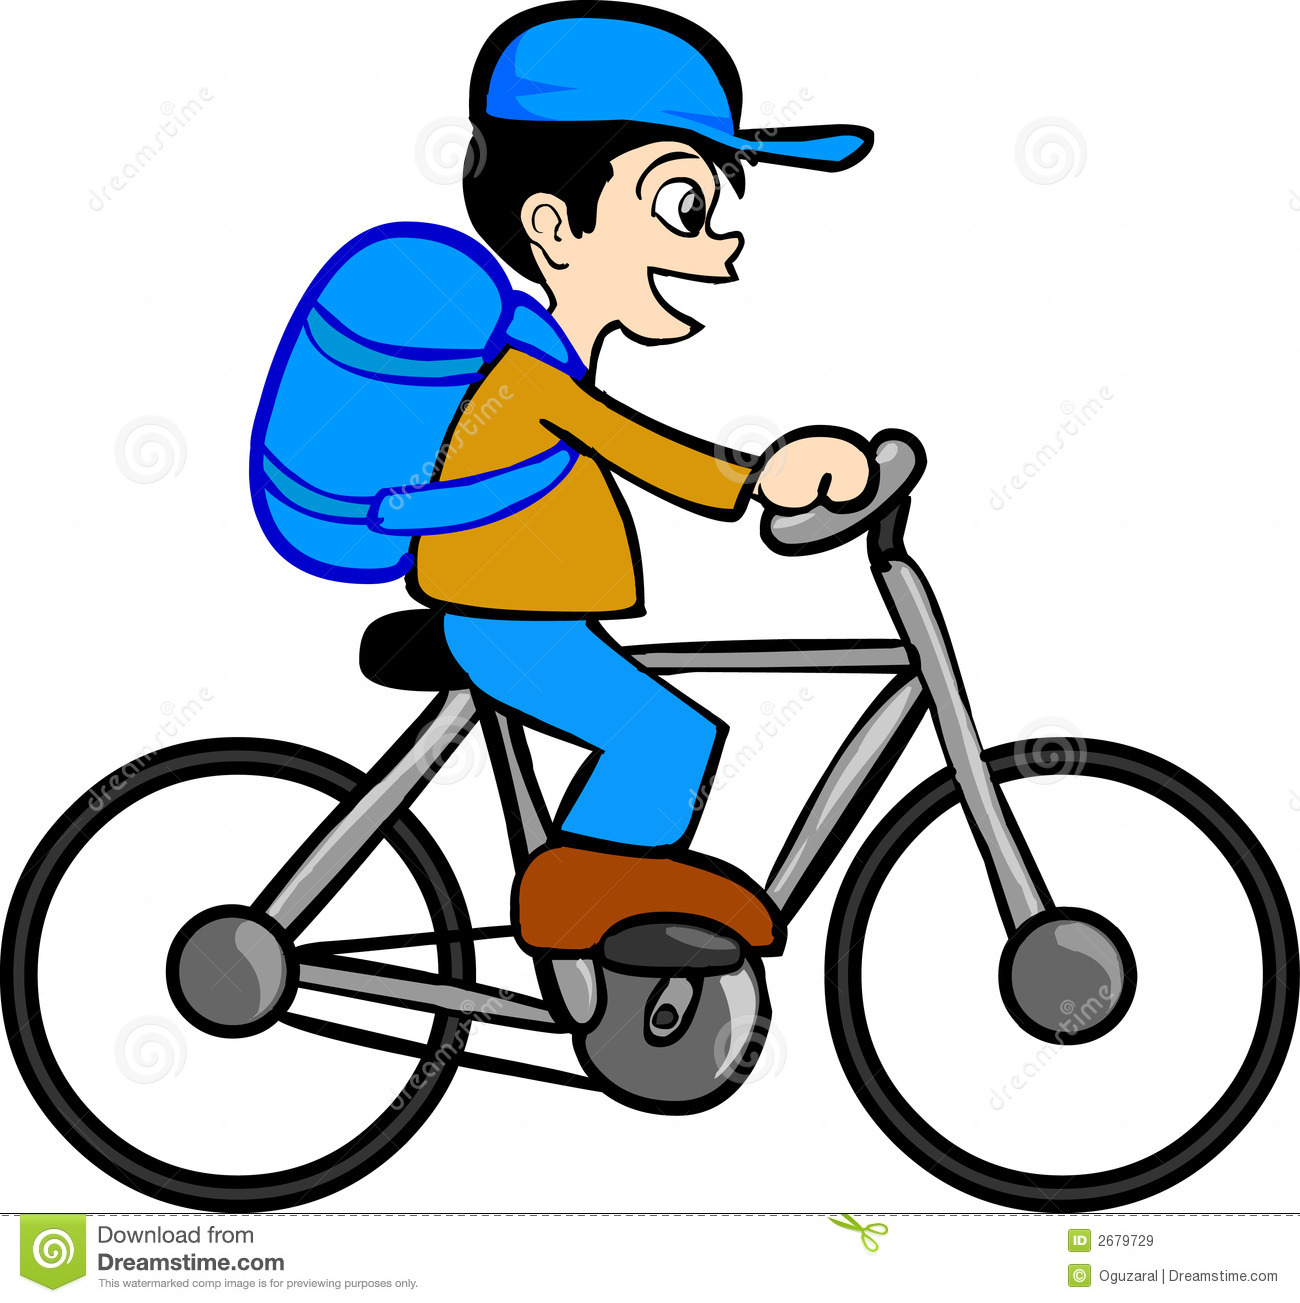 Rode clipart svg transparent Bicycle clipart rode - 151 transparent clip arts, images and ... svg transparent